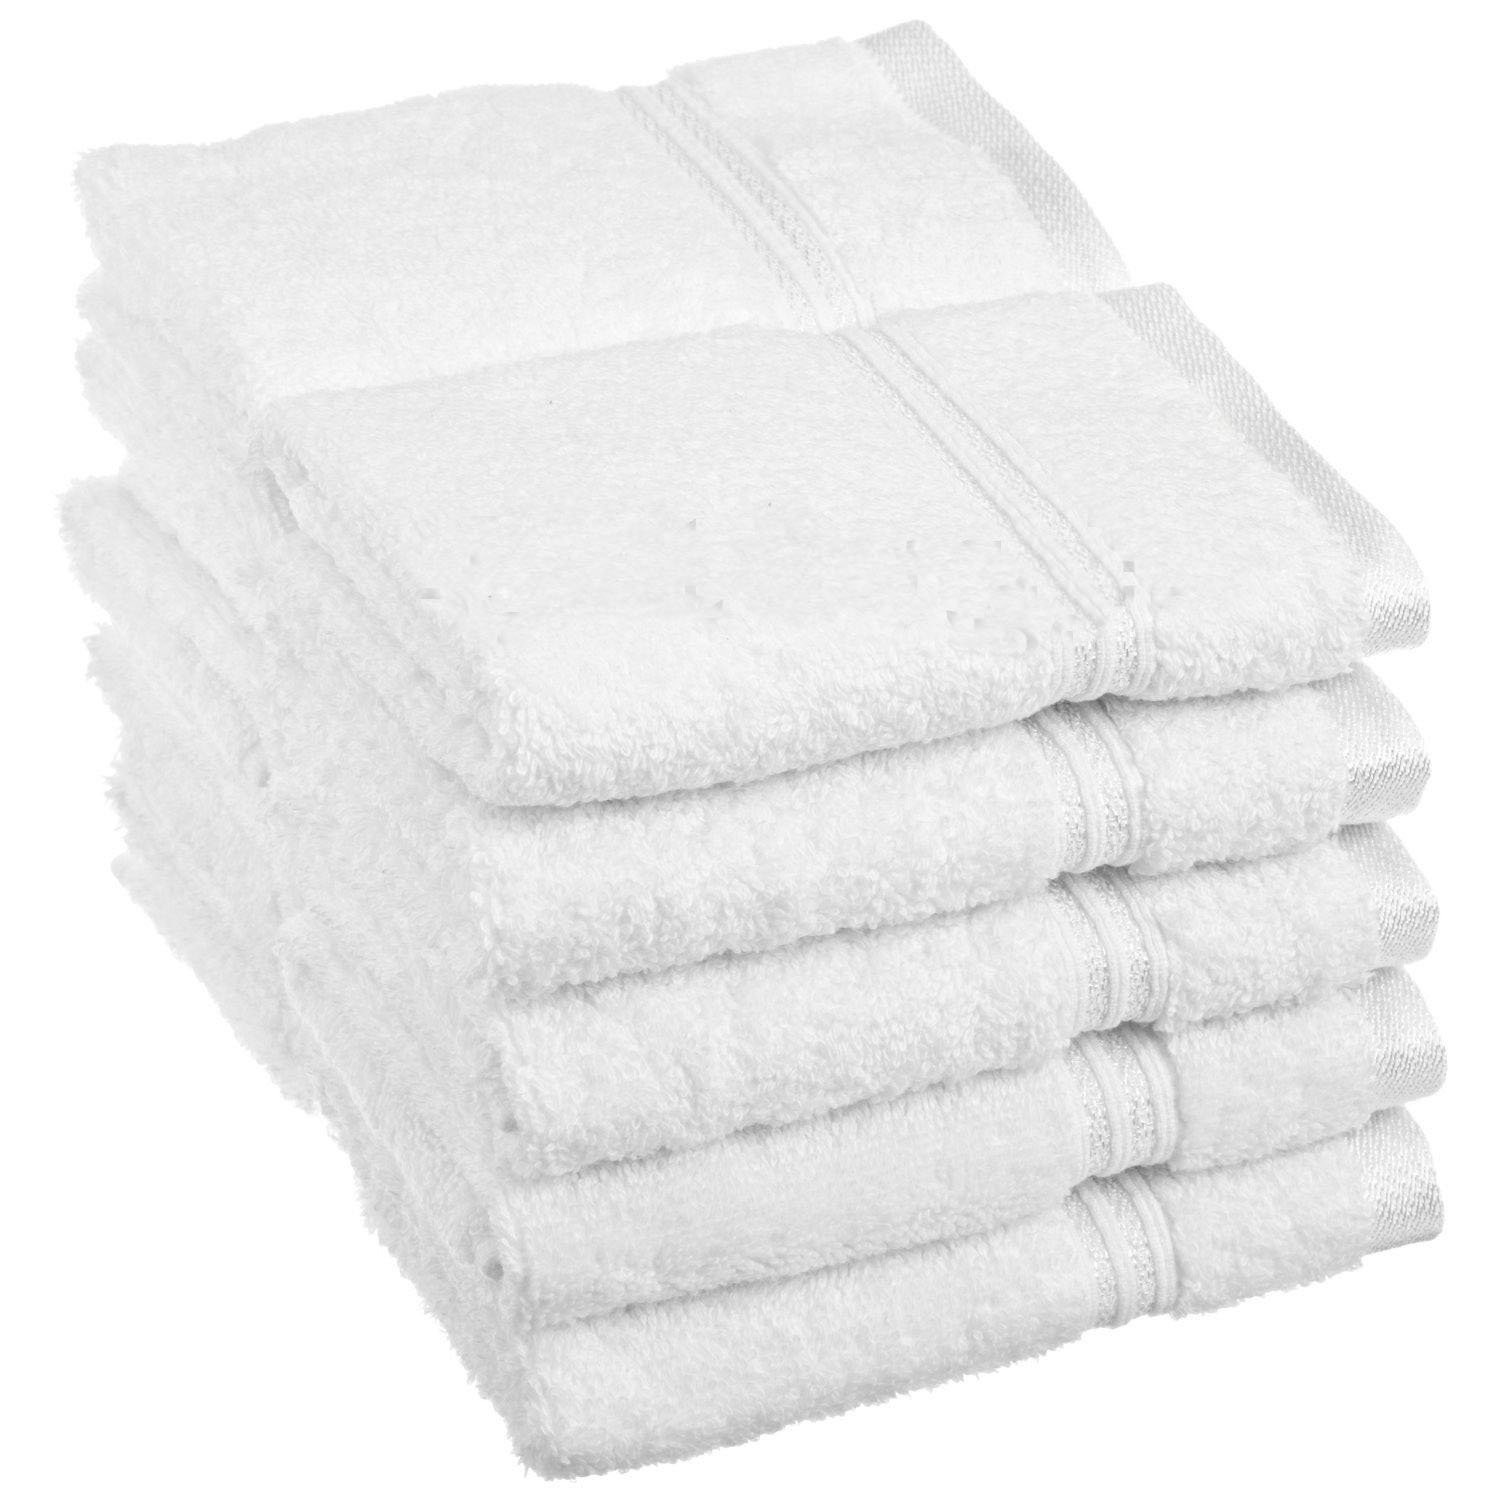 100% Egyptian Cotton Superior 10pc Wash Cloth Set White Towels & Washcloths0